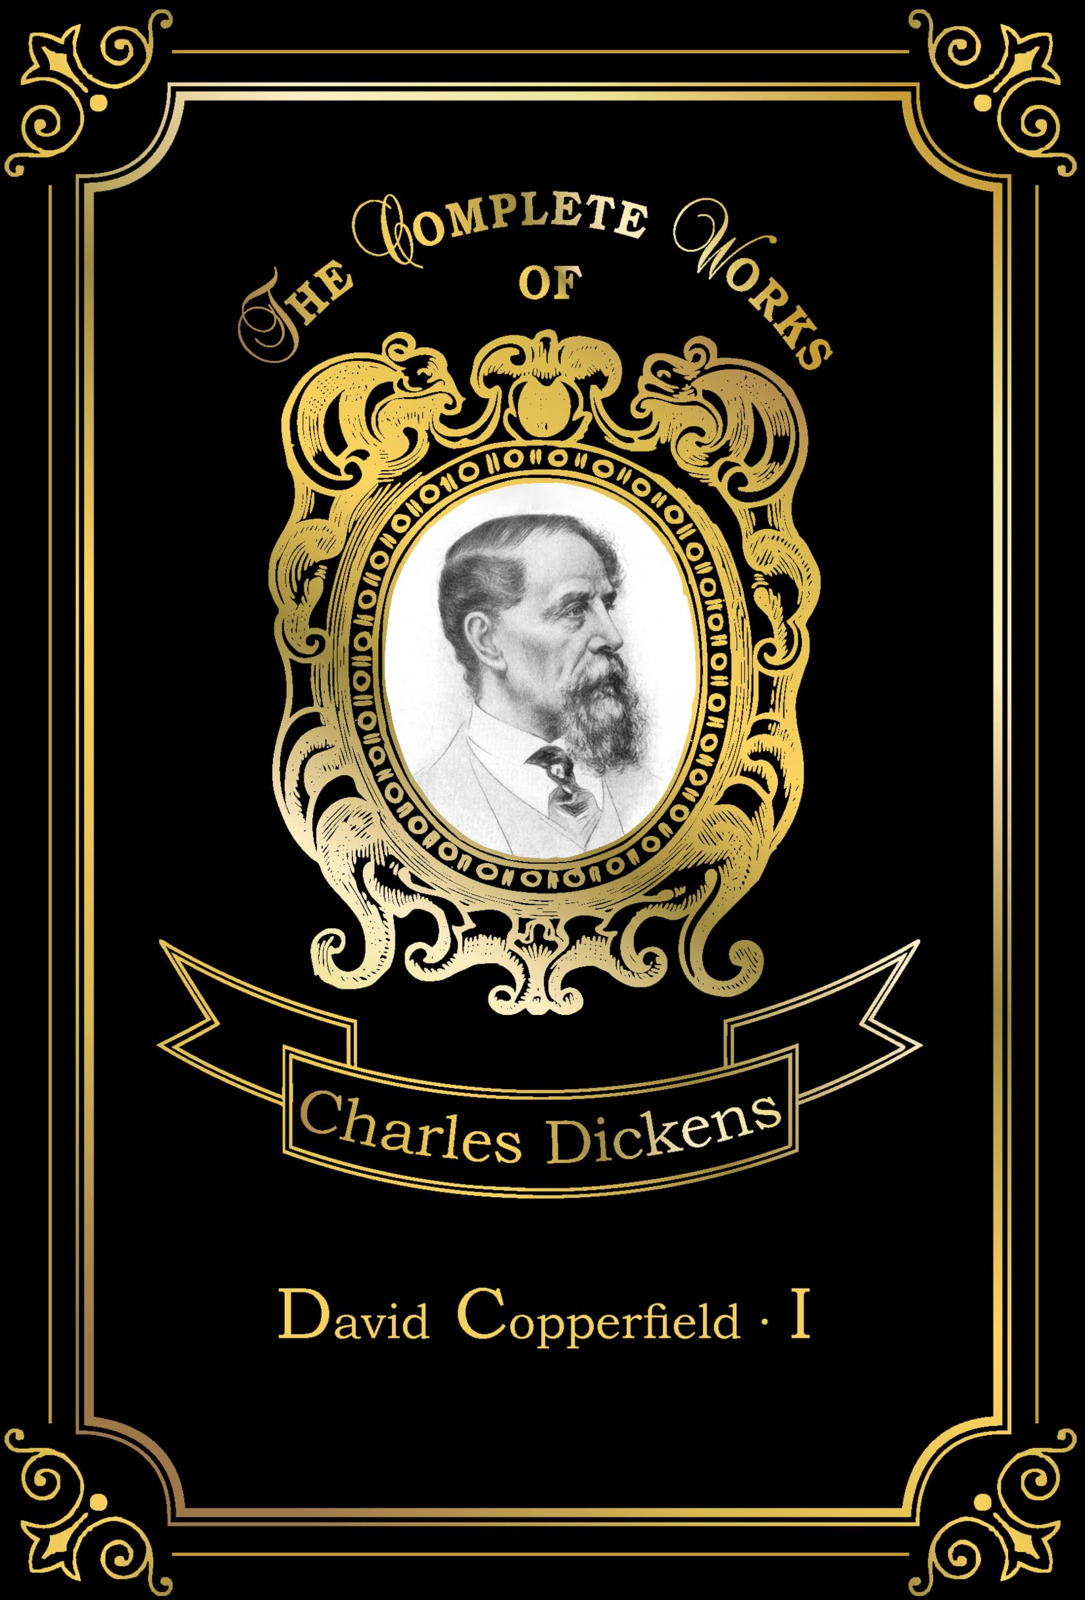 C. Dickens David Copperfield: Book 1 dickens charles david copperfield part 1 давид копперфильд ч 1